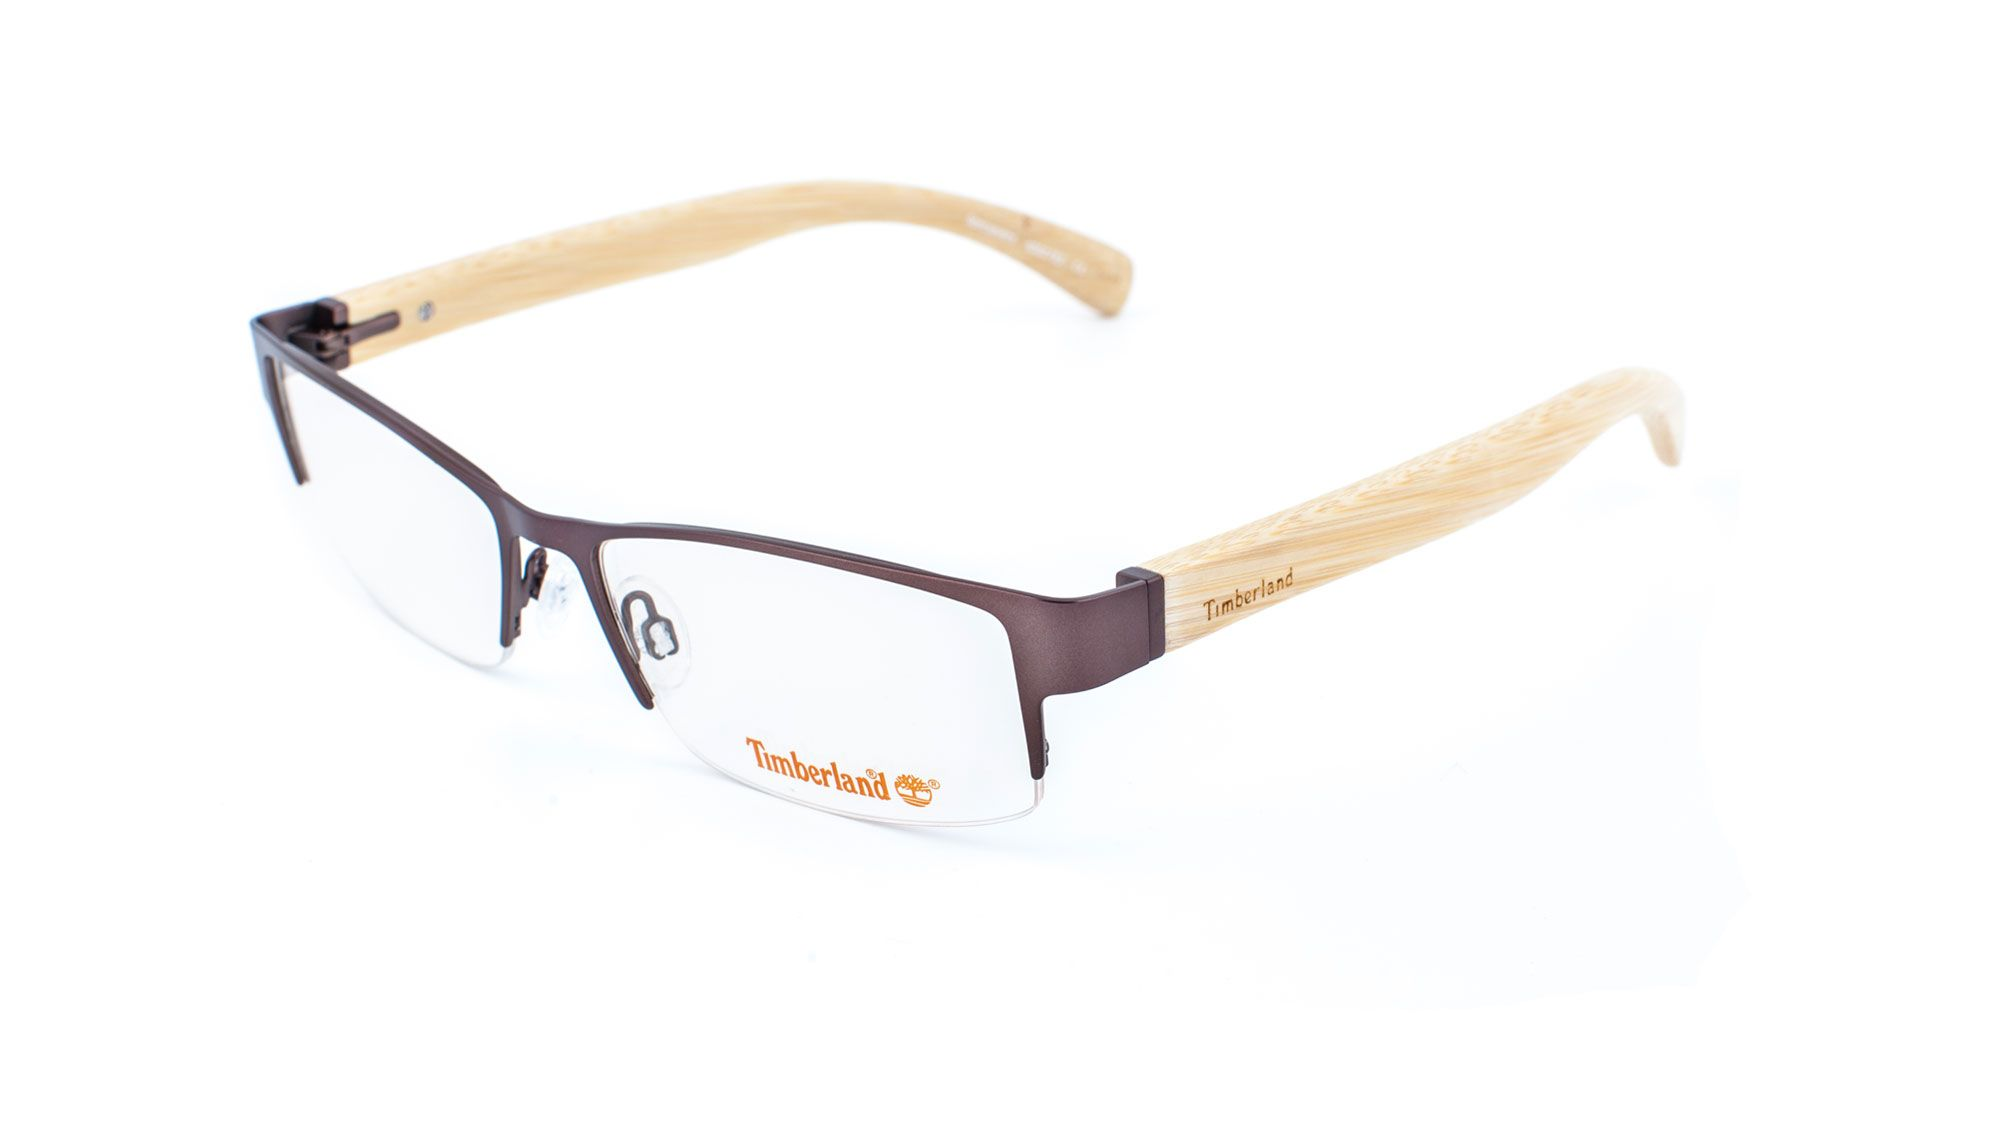 TB1250 Glasses by Timberland | Specsavers UK | Style | Pinterest